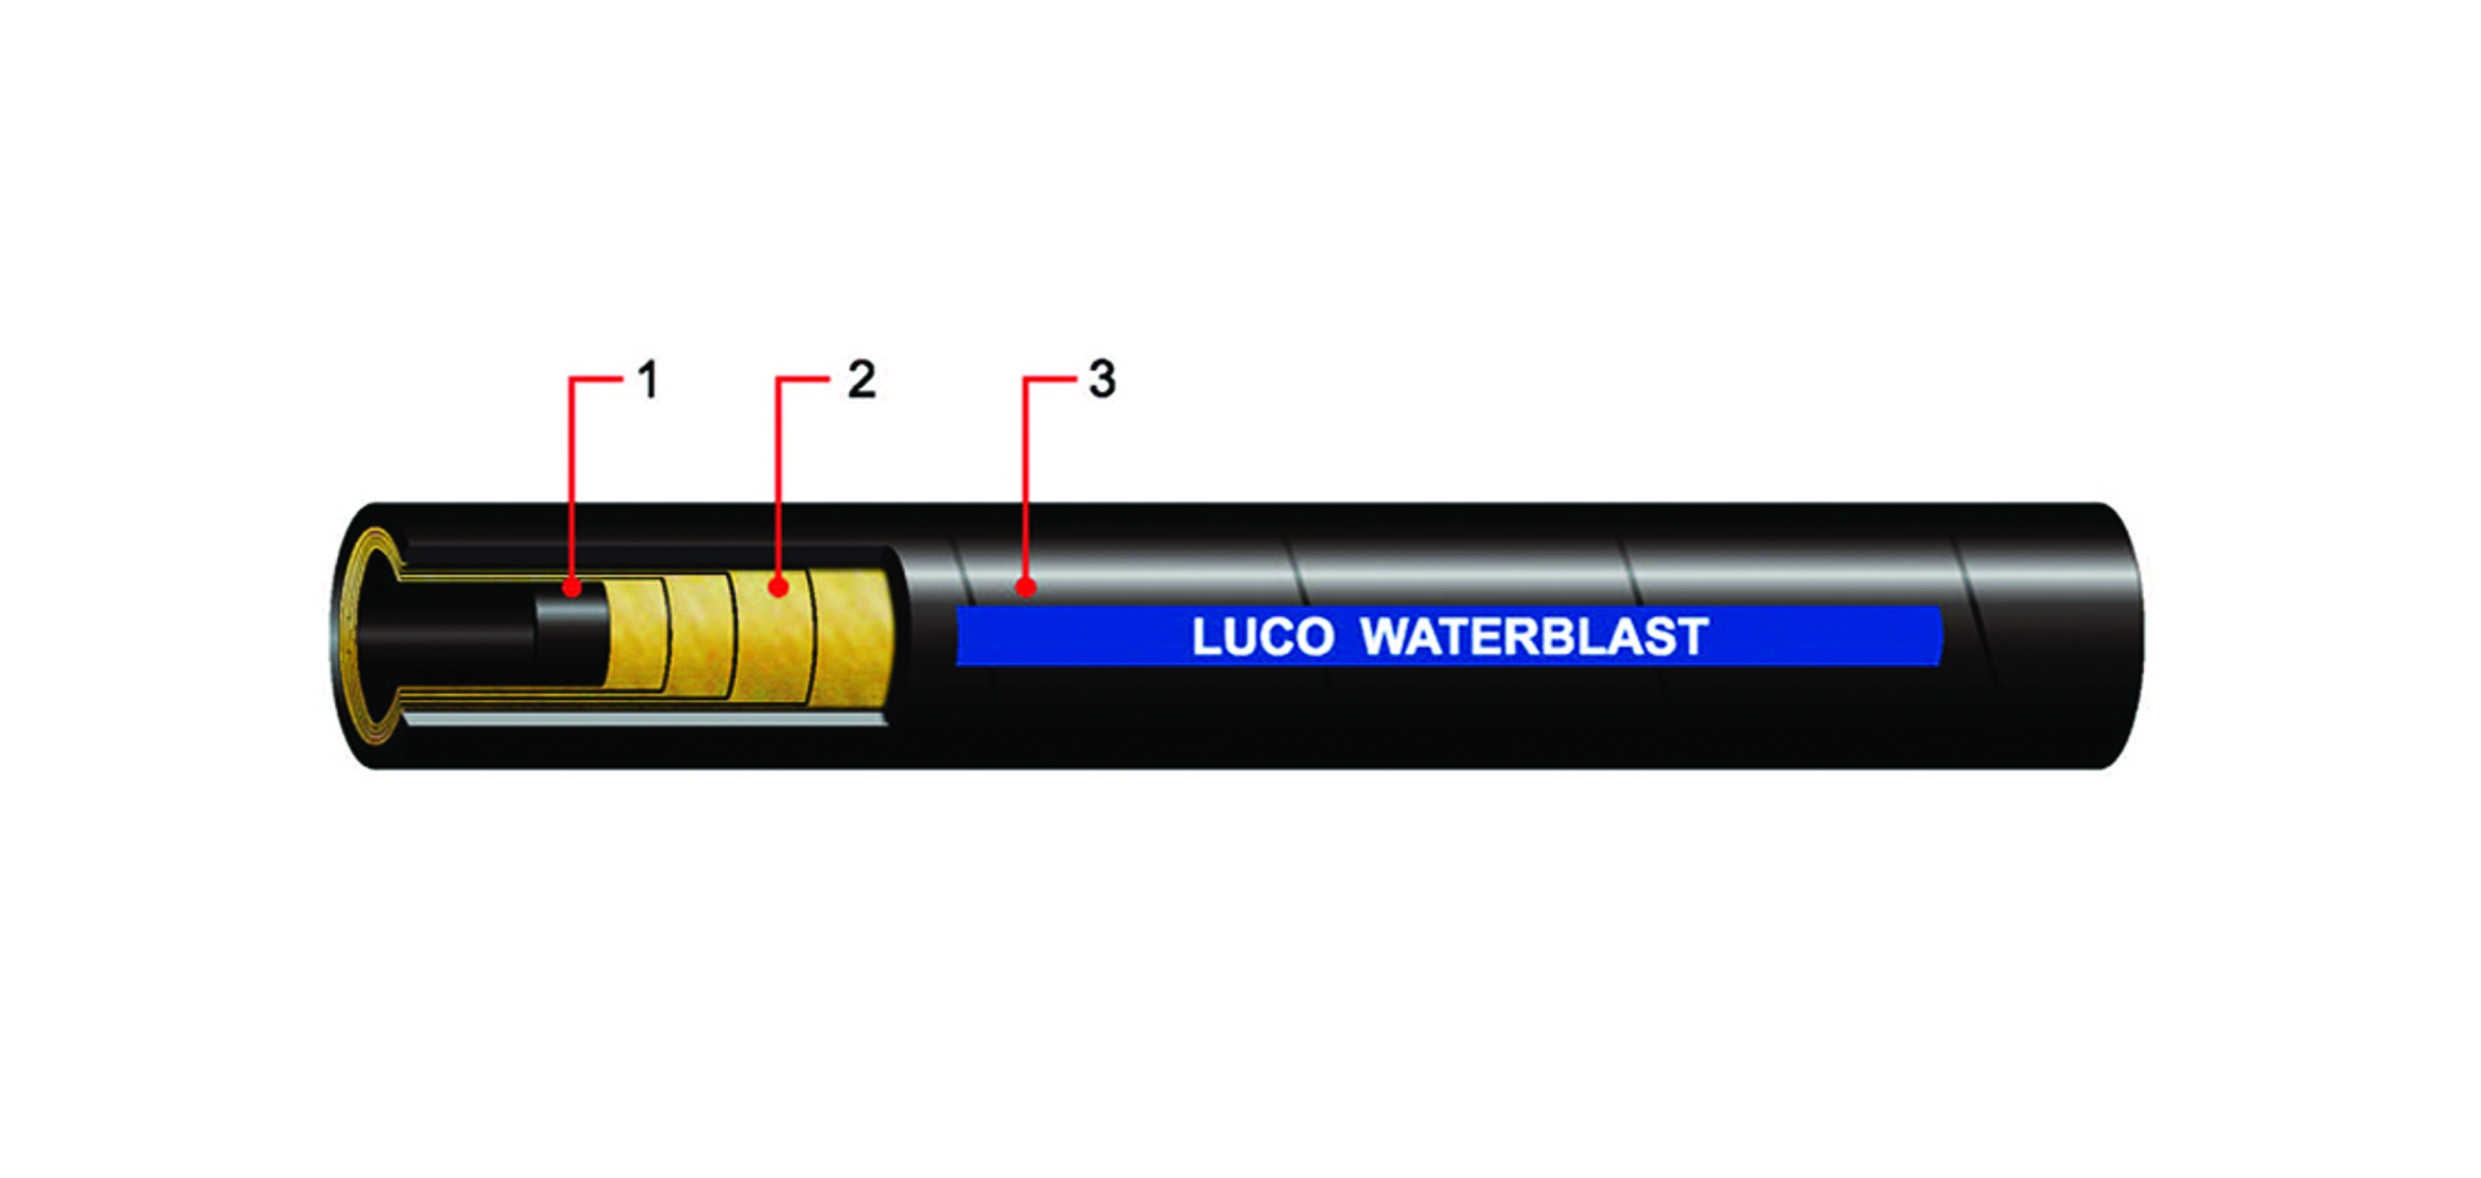 LUCOHOSE Waterblast Hose and Fitting